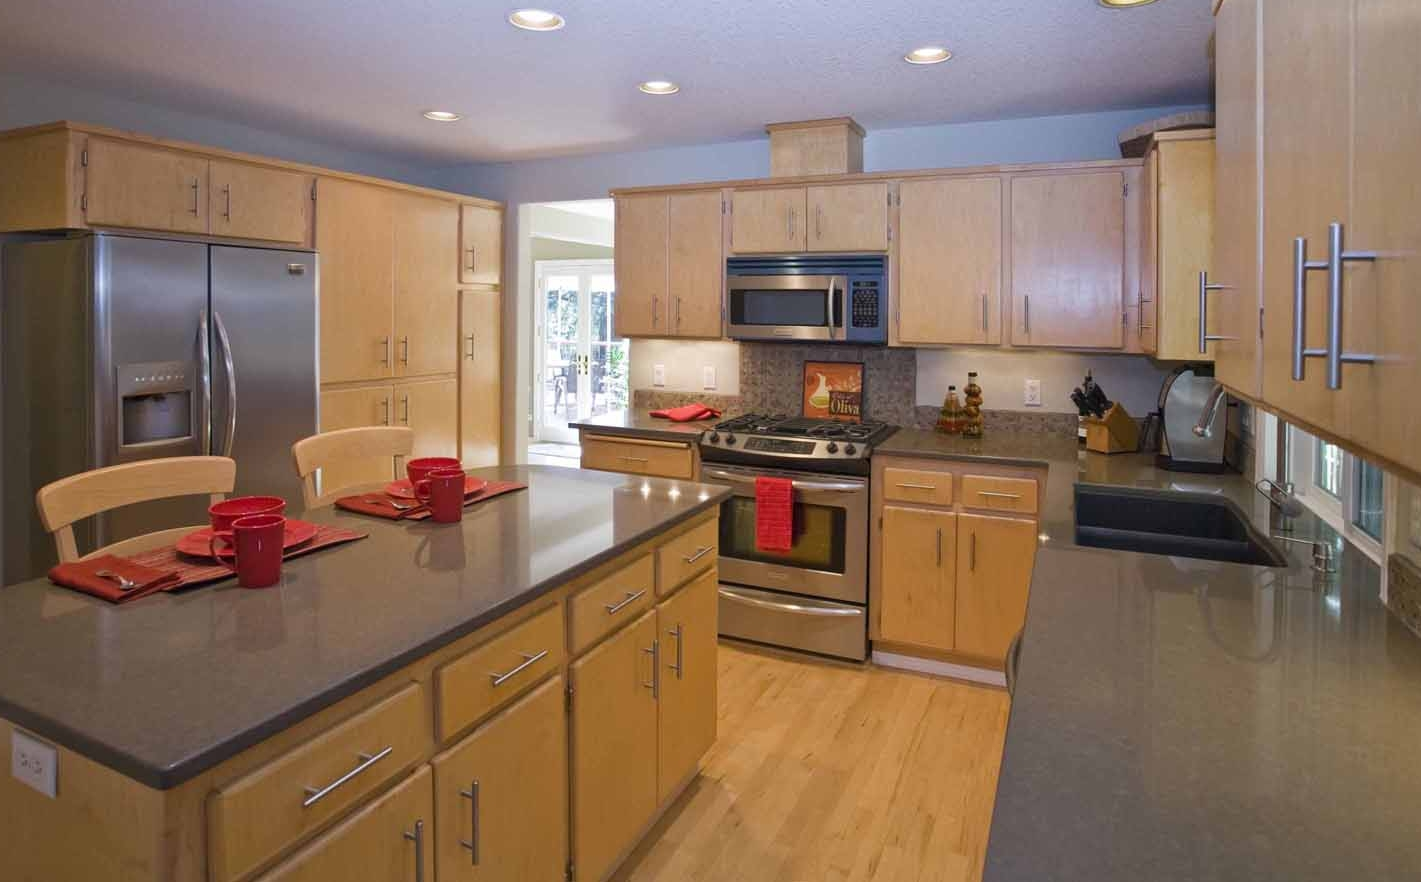 Kitchen tops & appliances 2.jpg